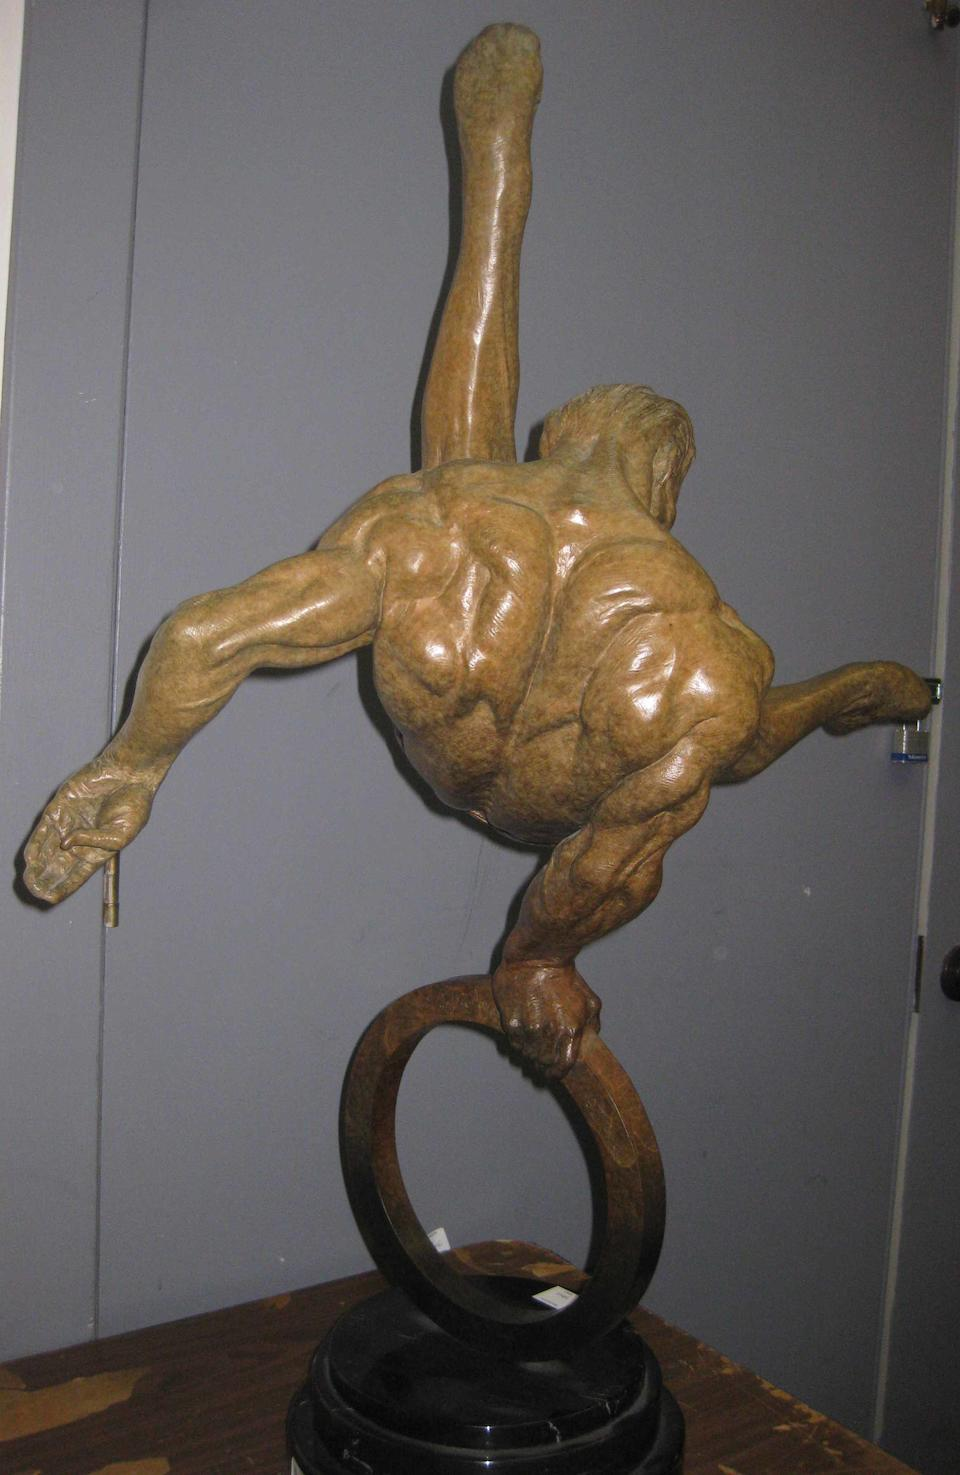 An American contemporary patinated bronze figure: Flair Across America: The Gymnast  Richard MacDonald (American, born 1946) 1995, second state, #69/175